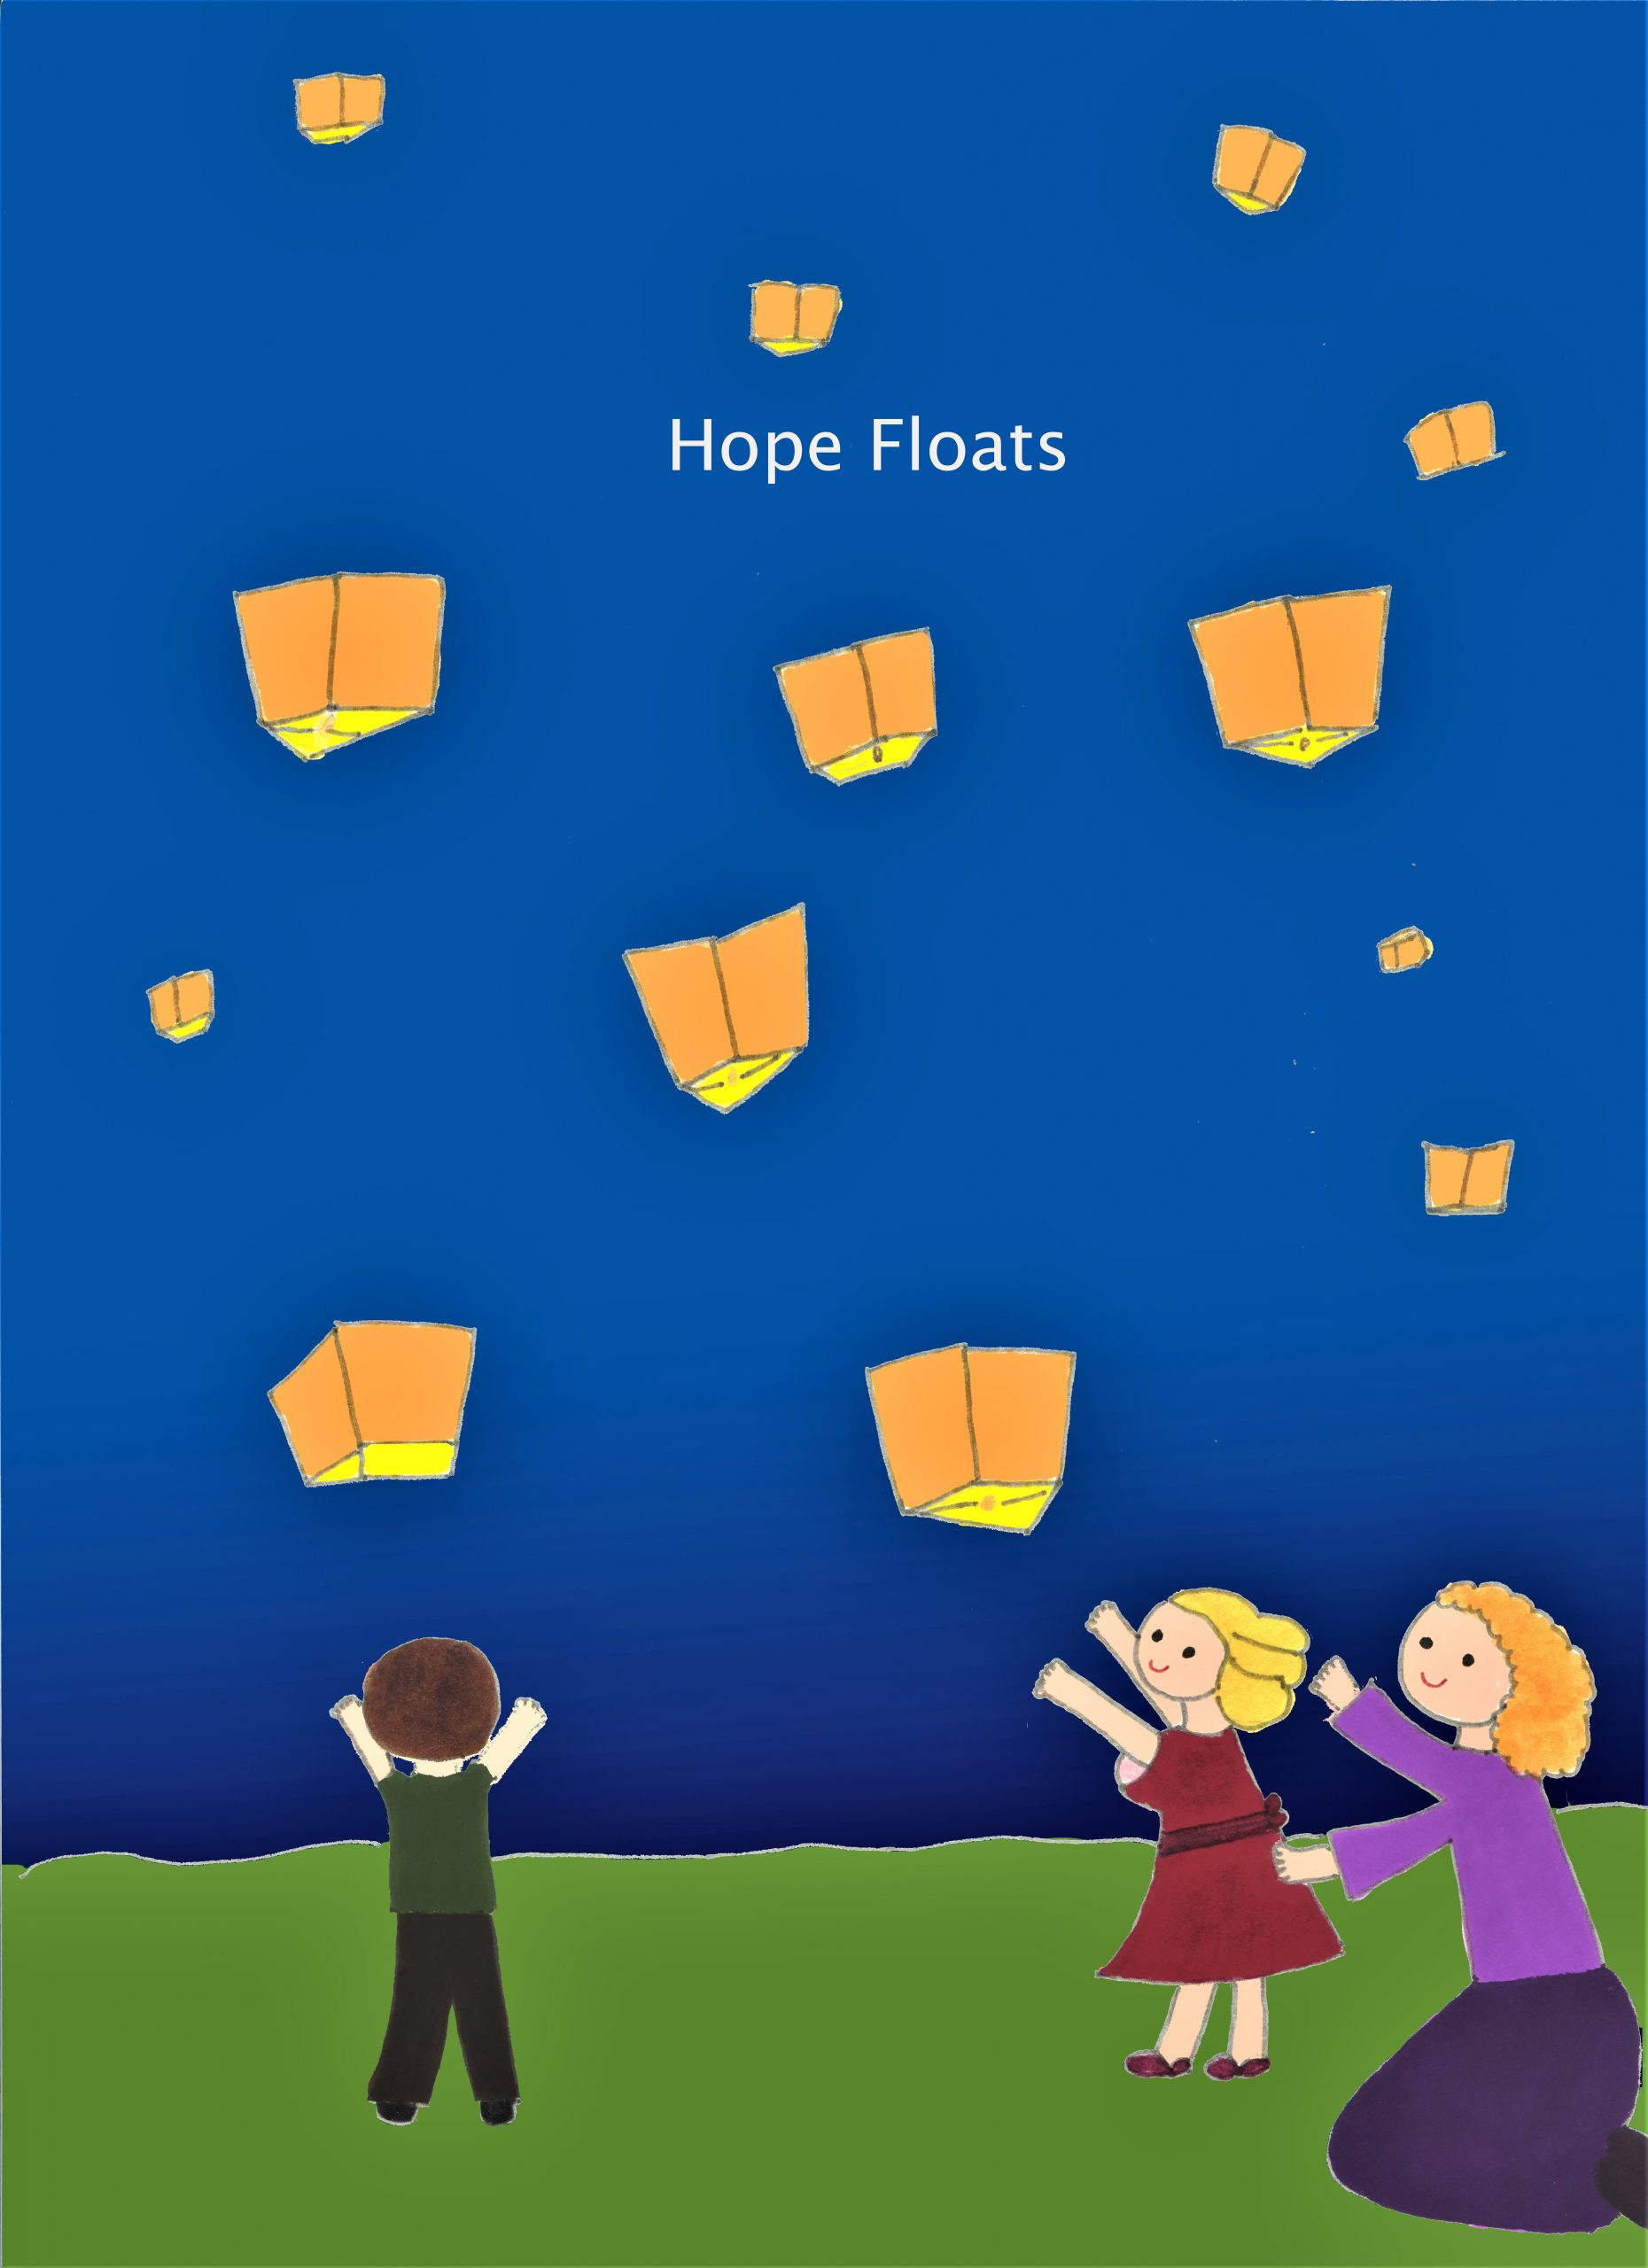 Hope Floats Animated eCard